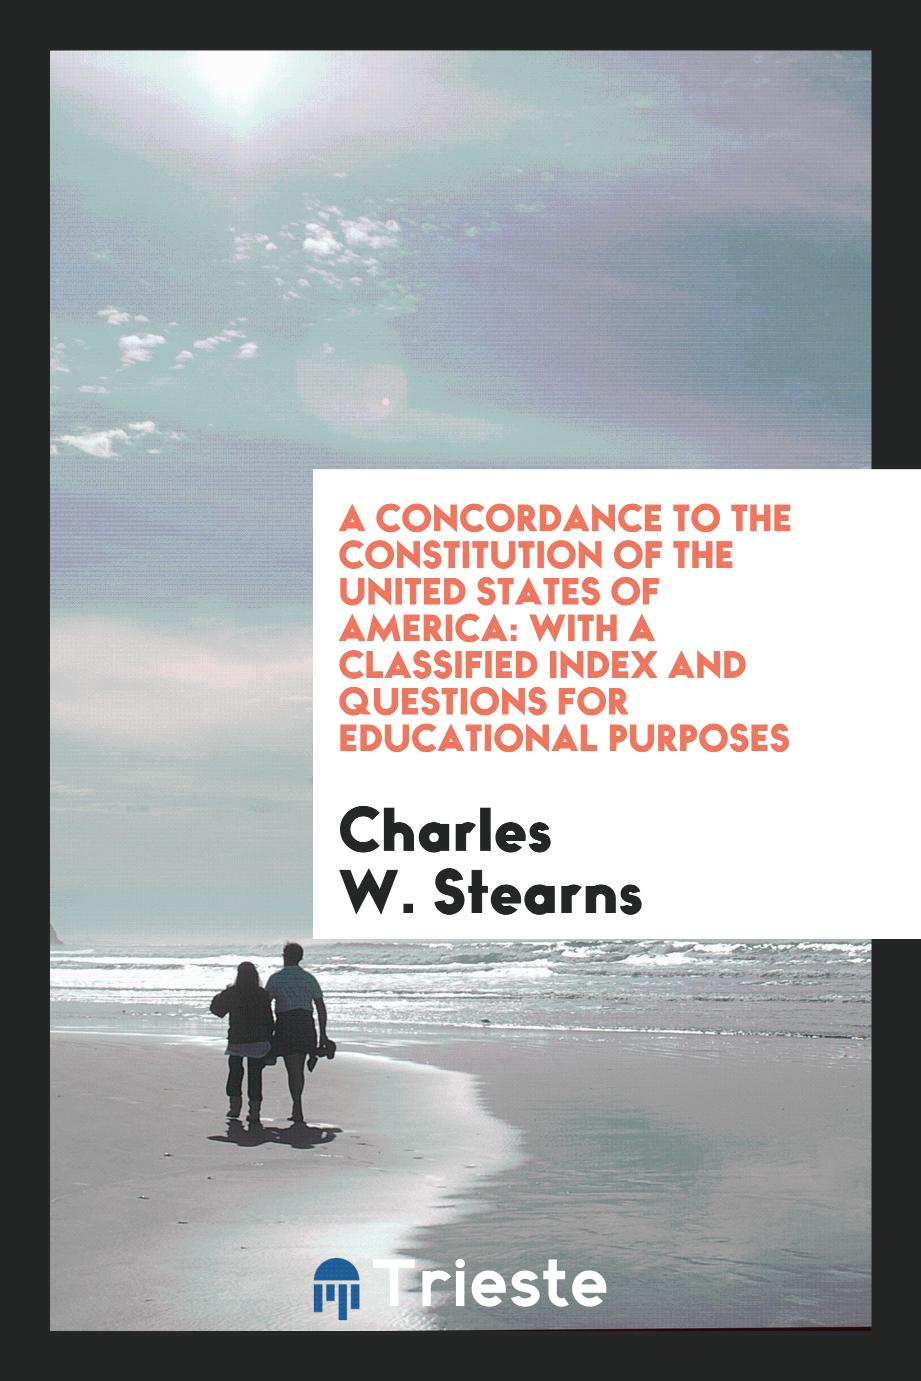 A Concordance to the Constitution of the United States of America: With a Classified Index and Questions for Educational Purposes